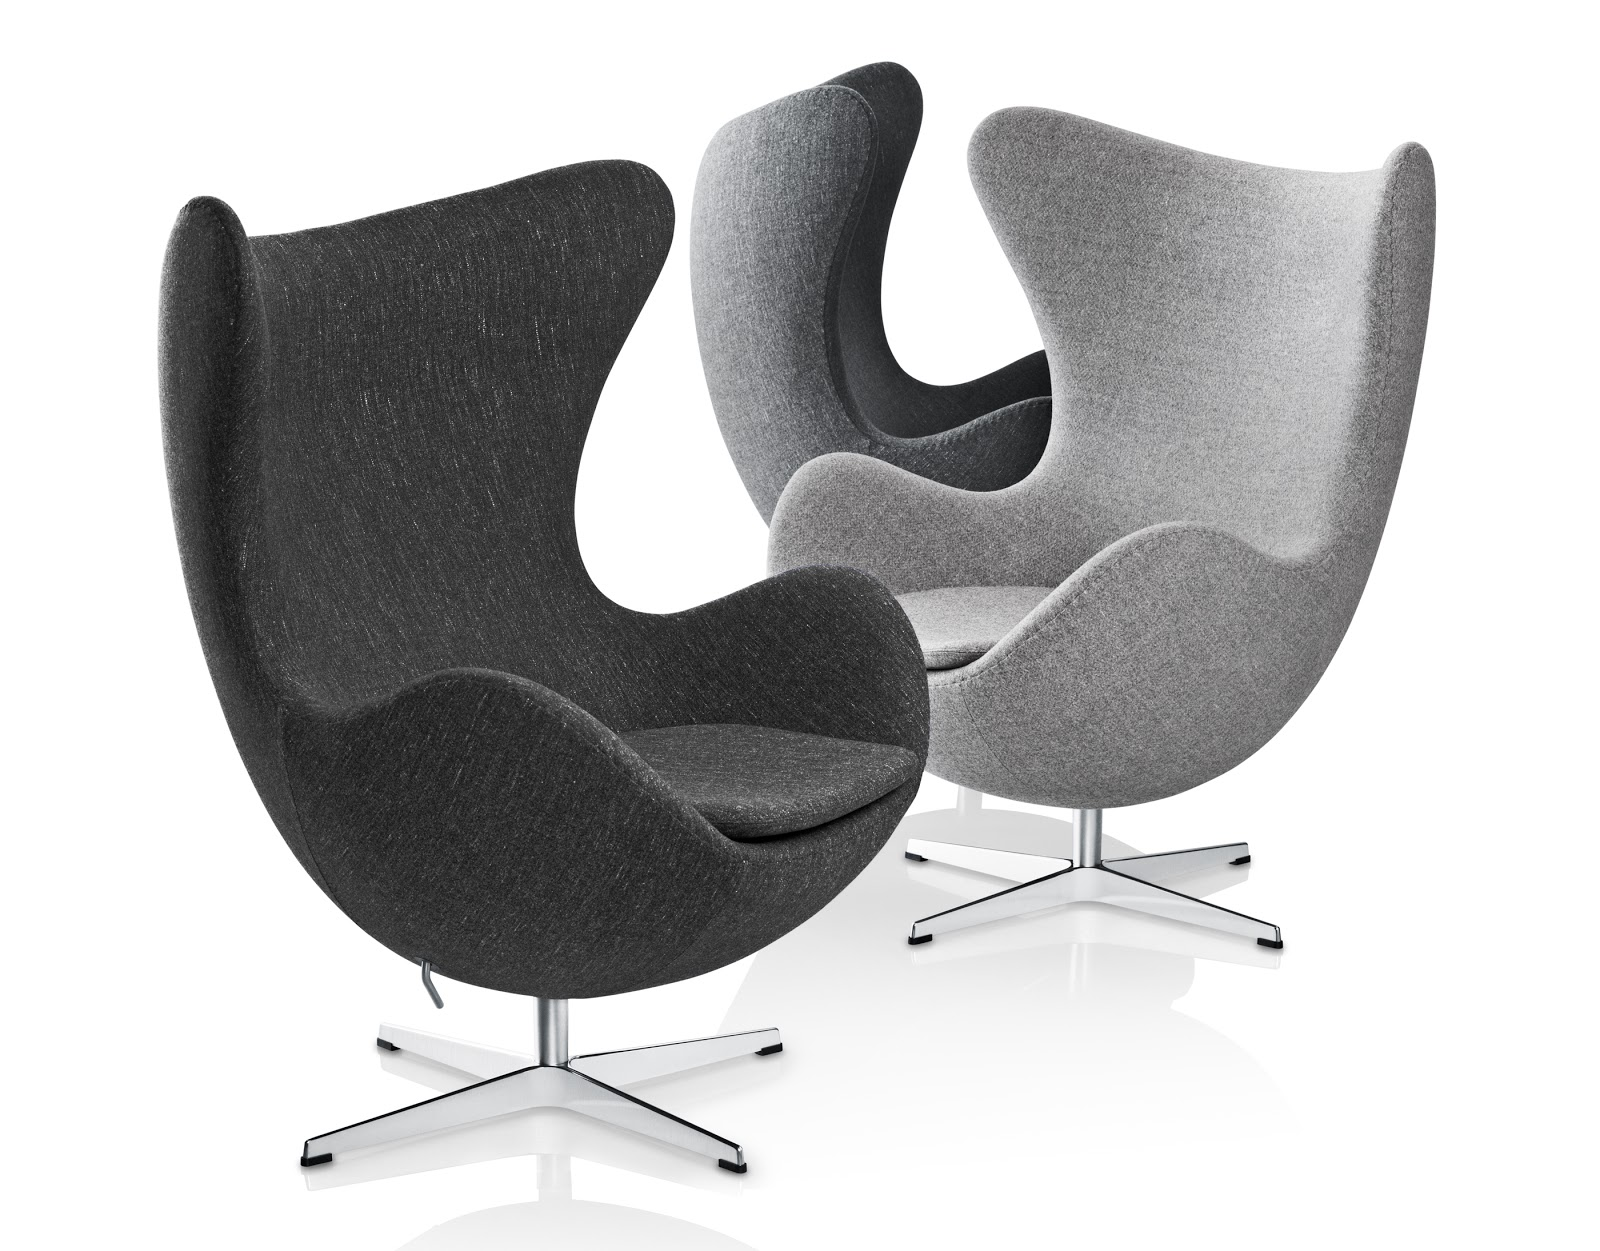 Jacobsen egg chairs saville row suite upholstery all for Egg chair jacobsen